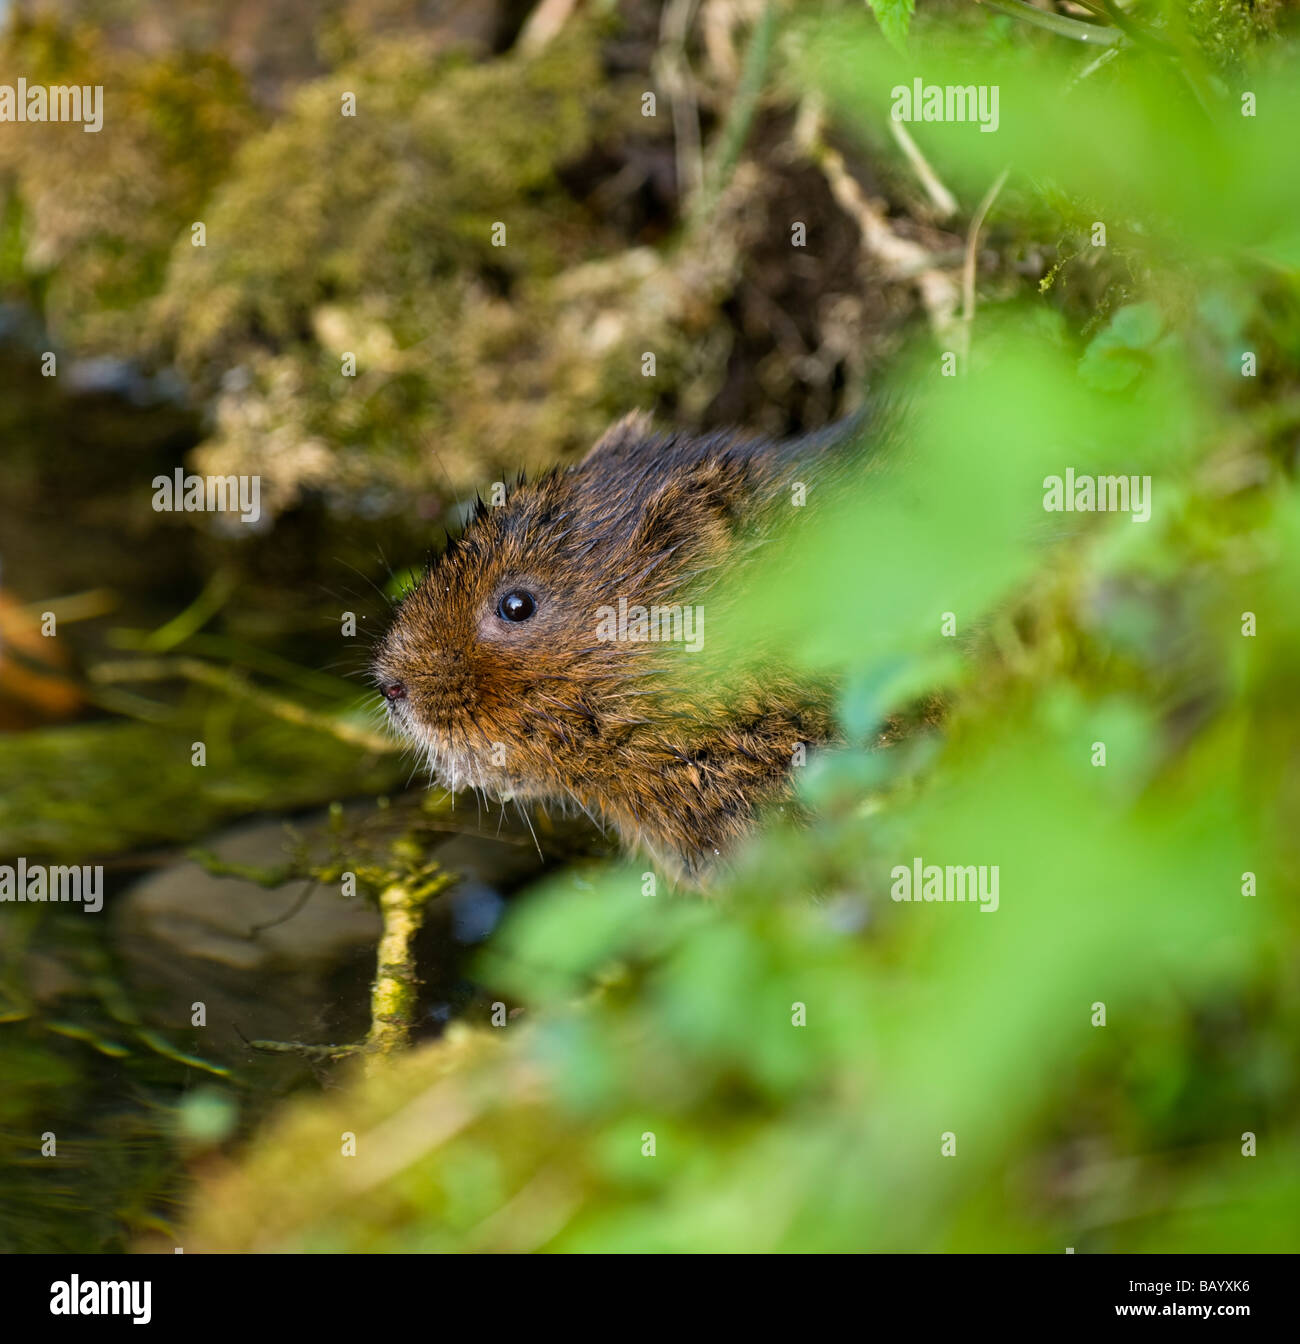 Water Vole Arvicola amphibius looking out of its burrow - Stock Image